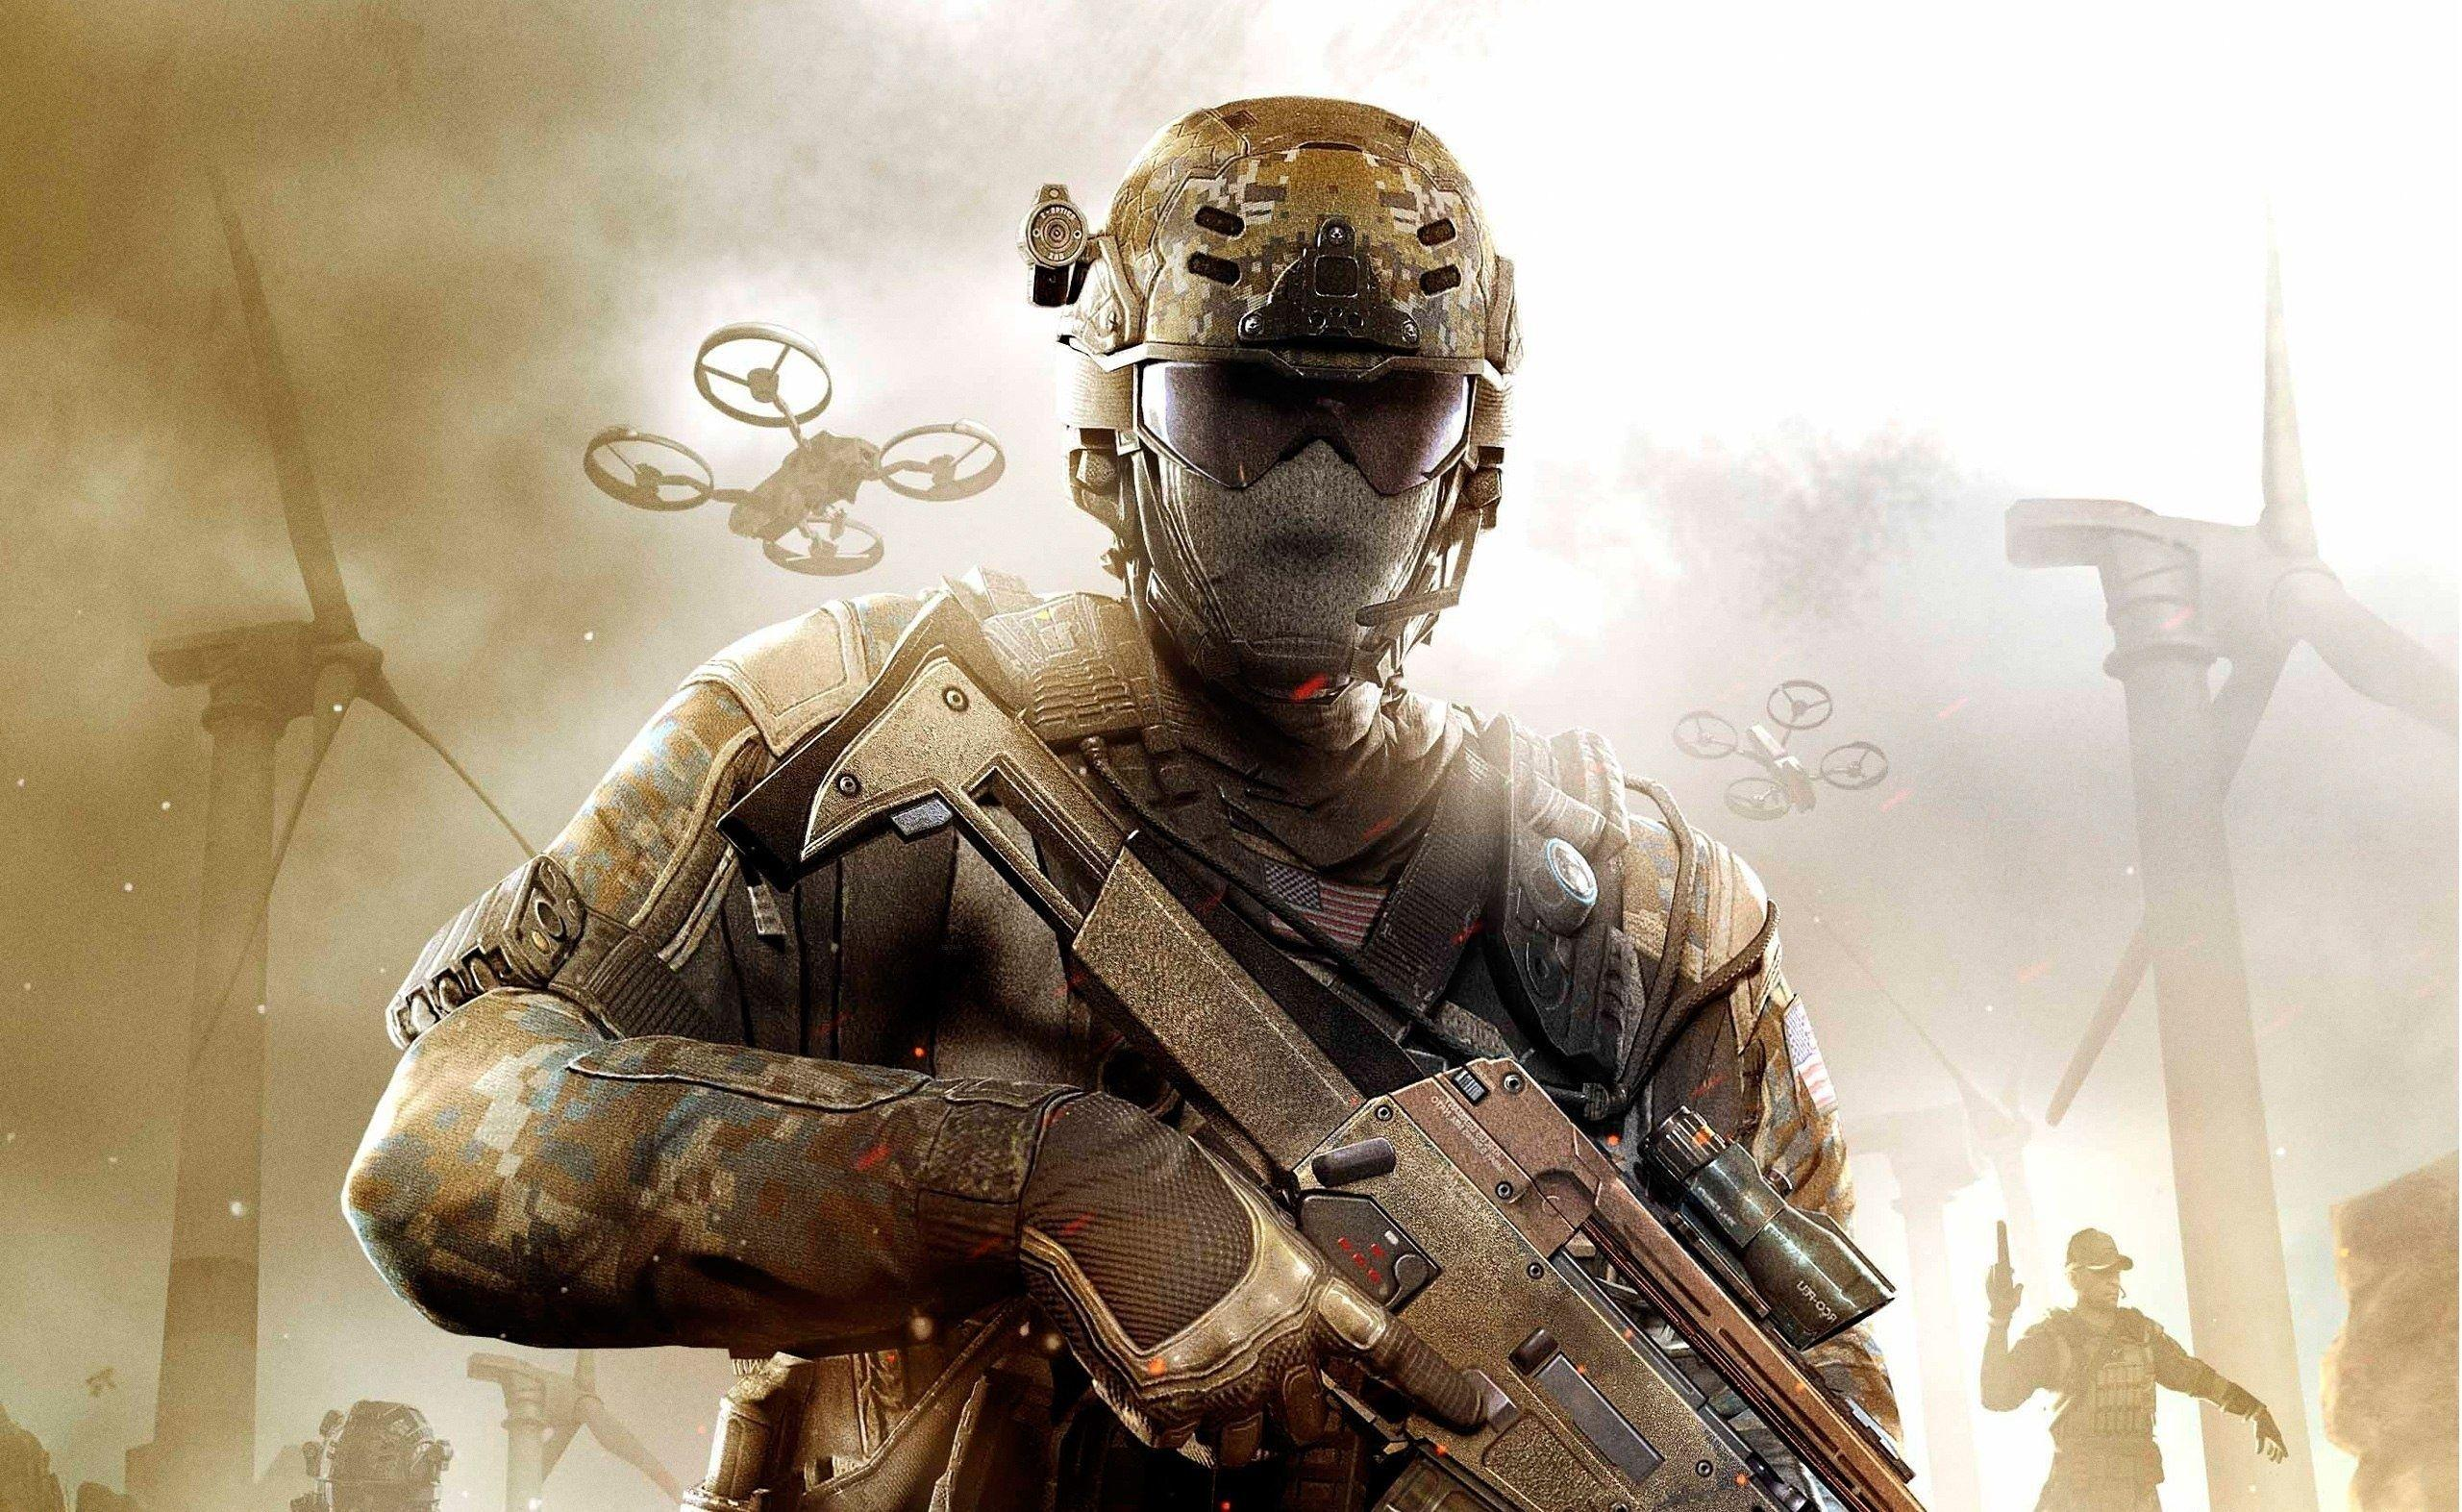 call of duty ghosts cell phone wallpapers » Game Wallpapers Collections